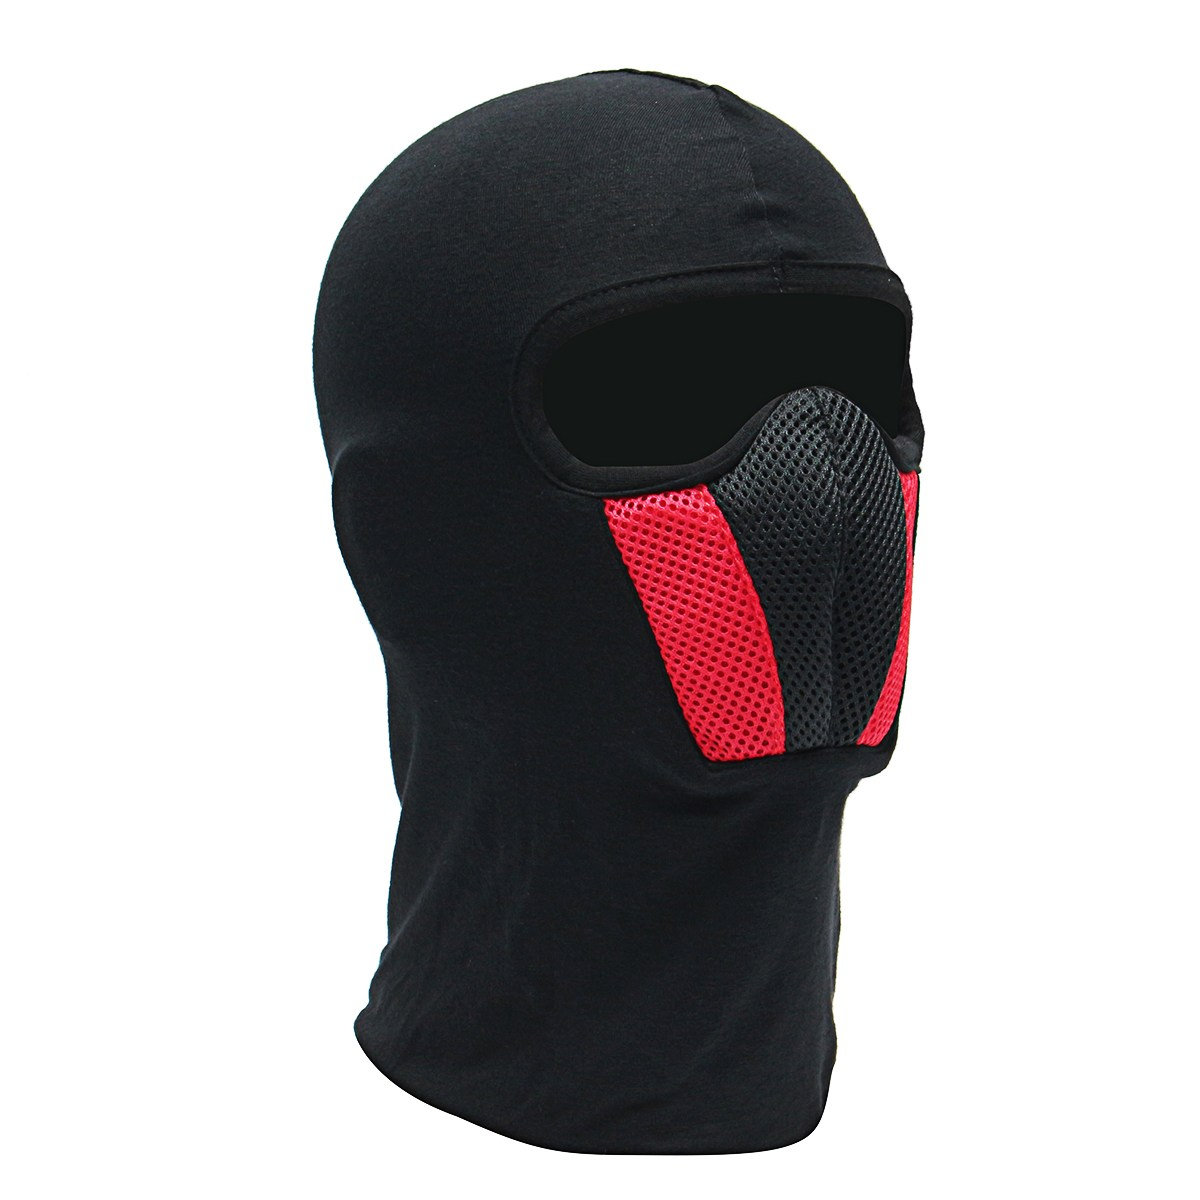 Windproof Motorbike Cycling Face Mask Balaclava Outdoor Riding Bike Ski Face Mask Breathable Motorcycle Helmet Hood все цены